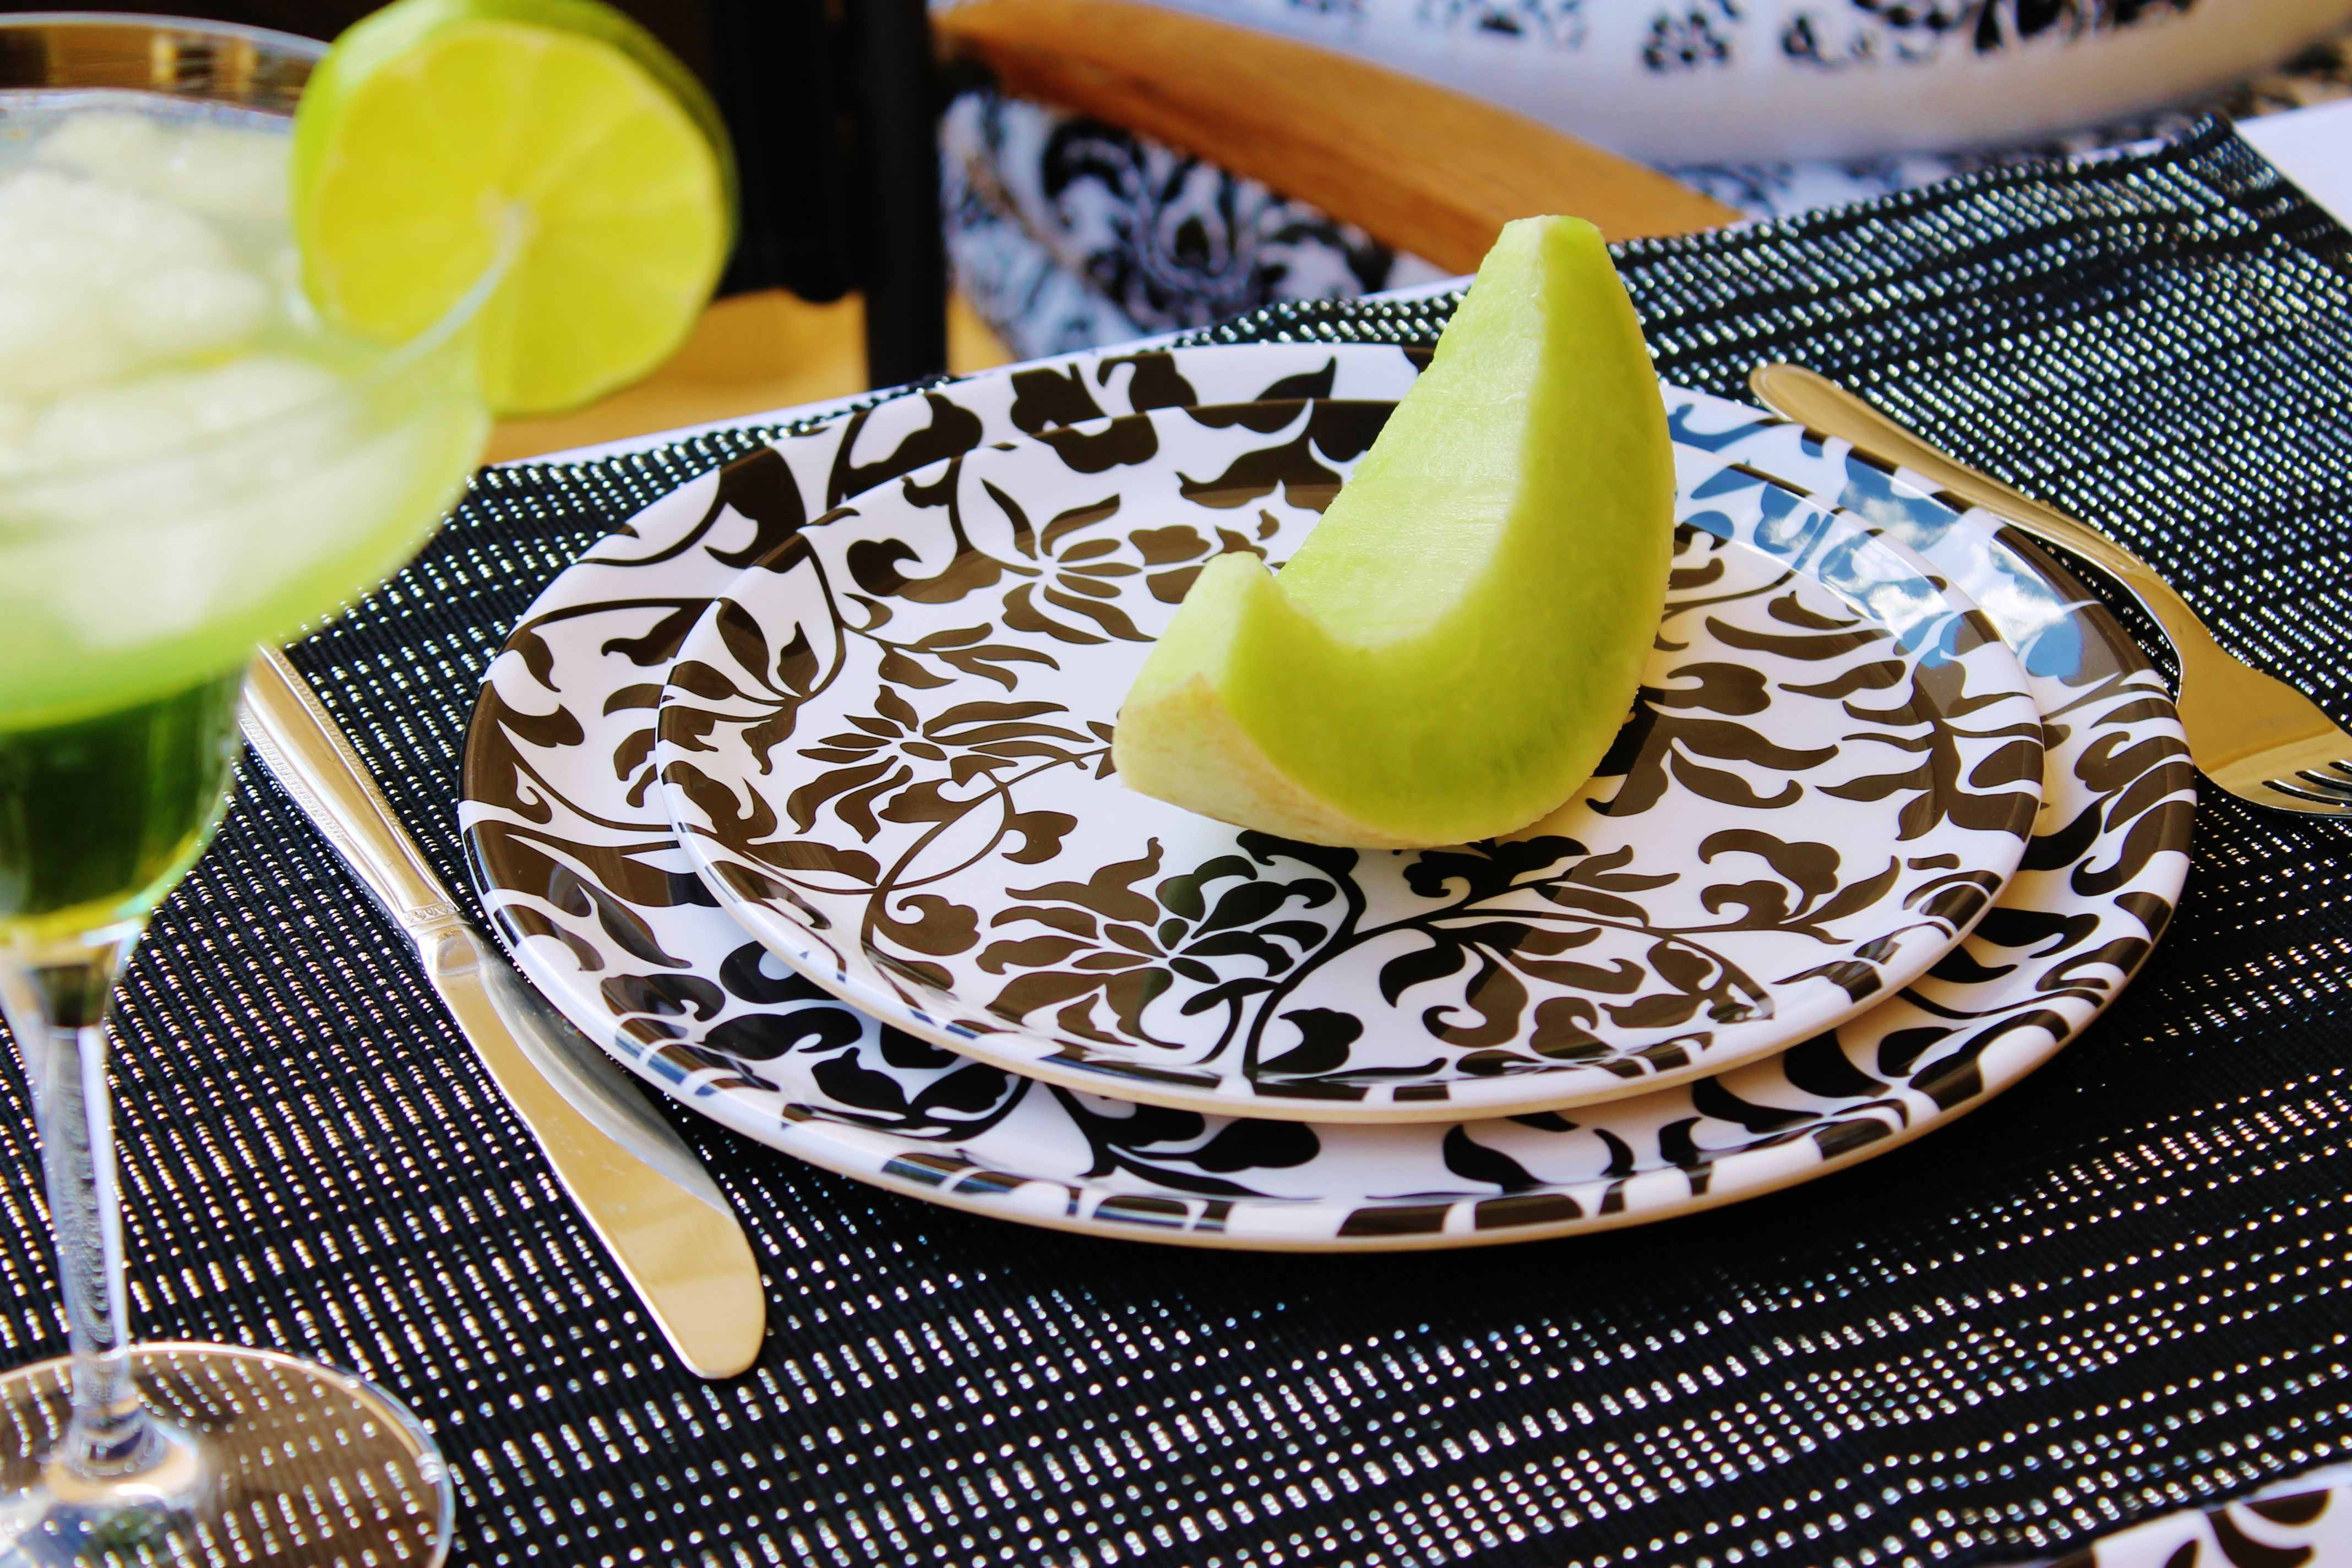 Captivating Melamine Dinnerware Is A Great Reusable Alternative To Ceramic Or Glass  Dinnerware When It Comes To Outdoor Dining. Get Style And Durability At Theu2026